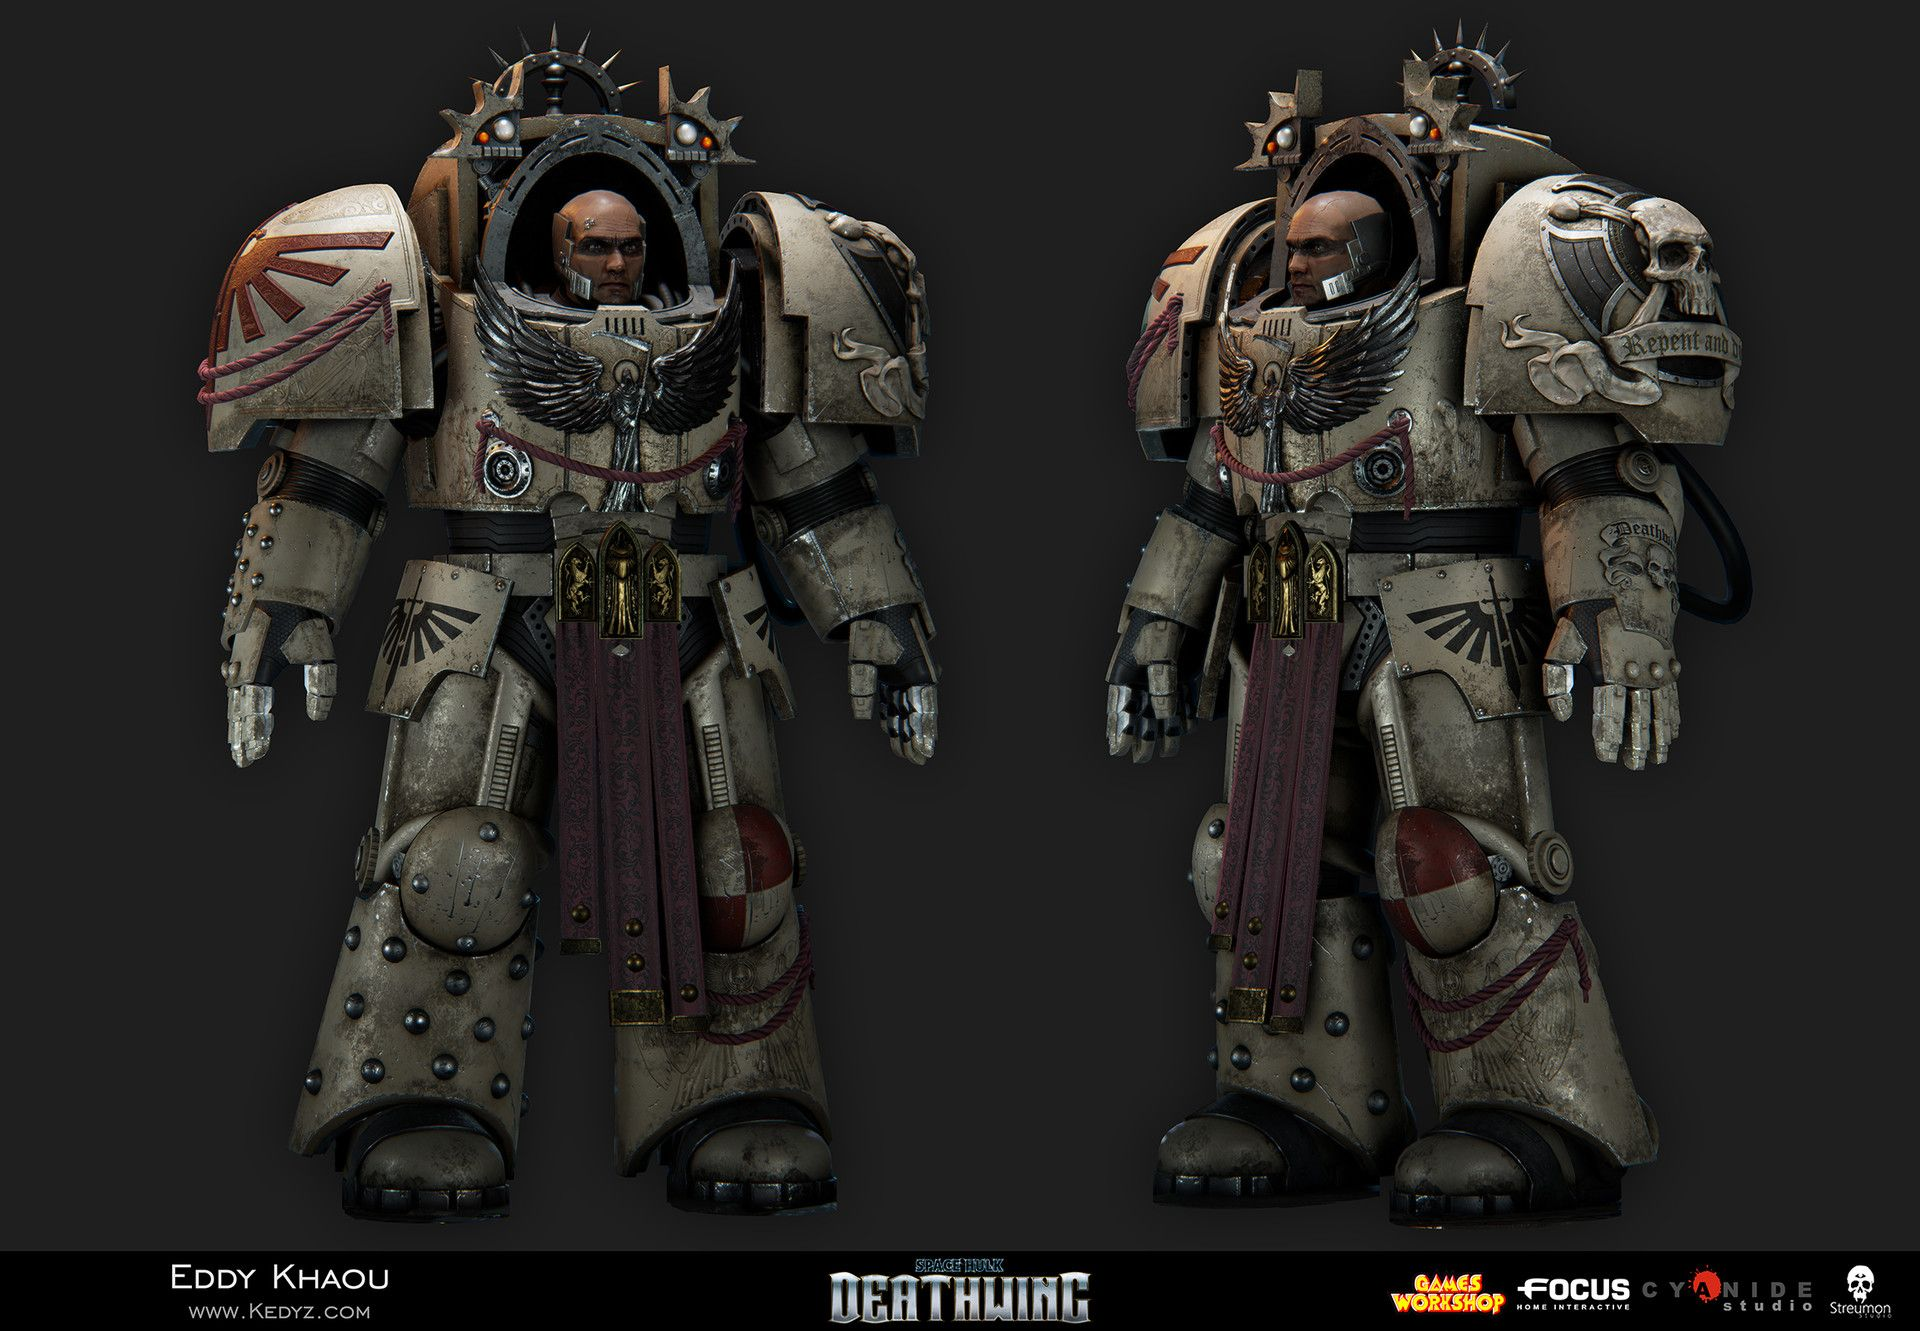 ArtStation - Space Hulk Deathwing - Terminator Assault, Eddy Khaou